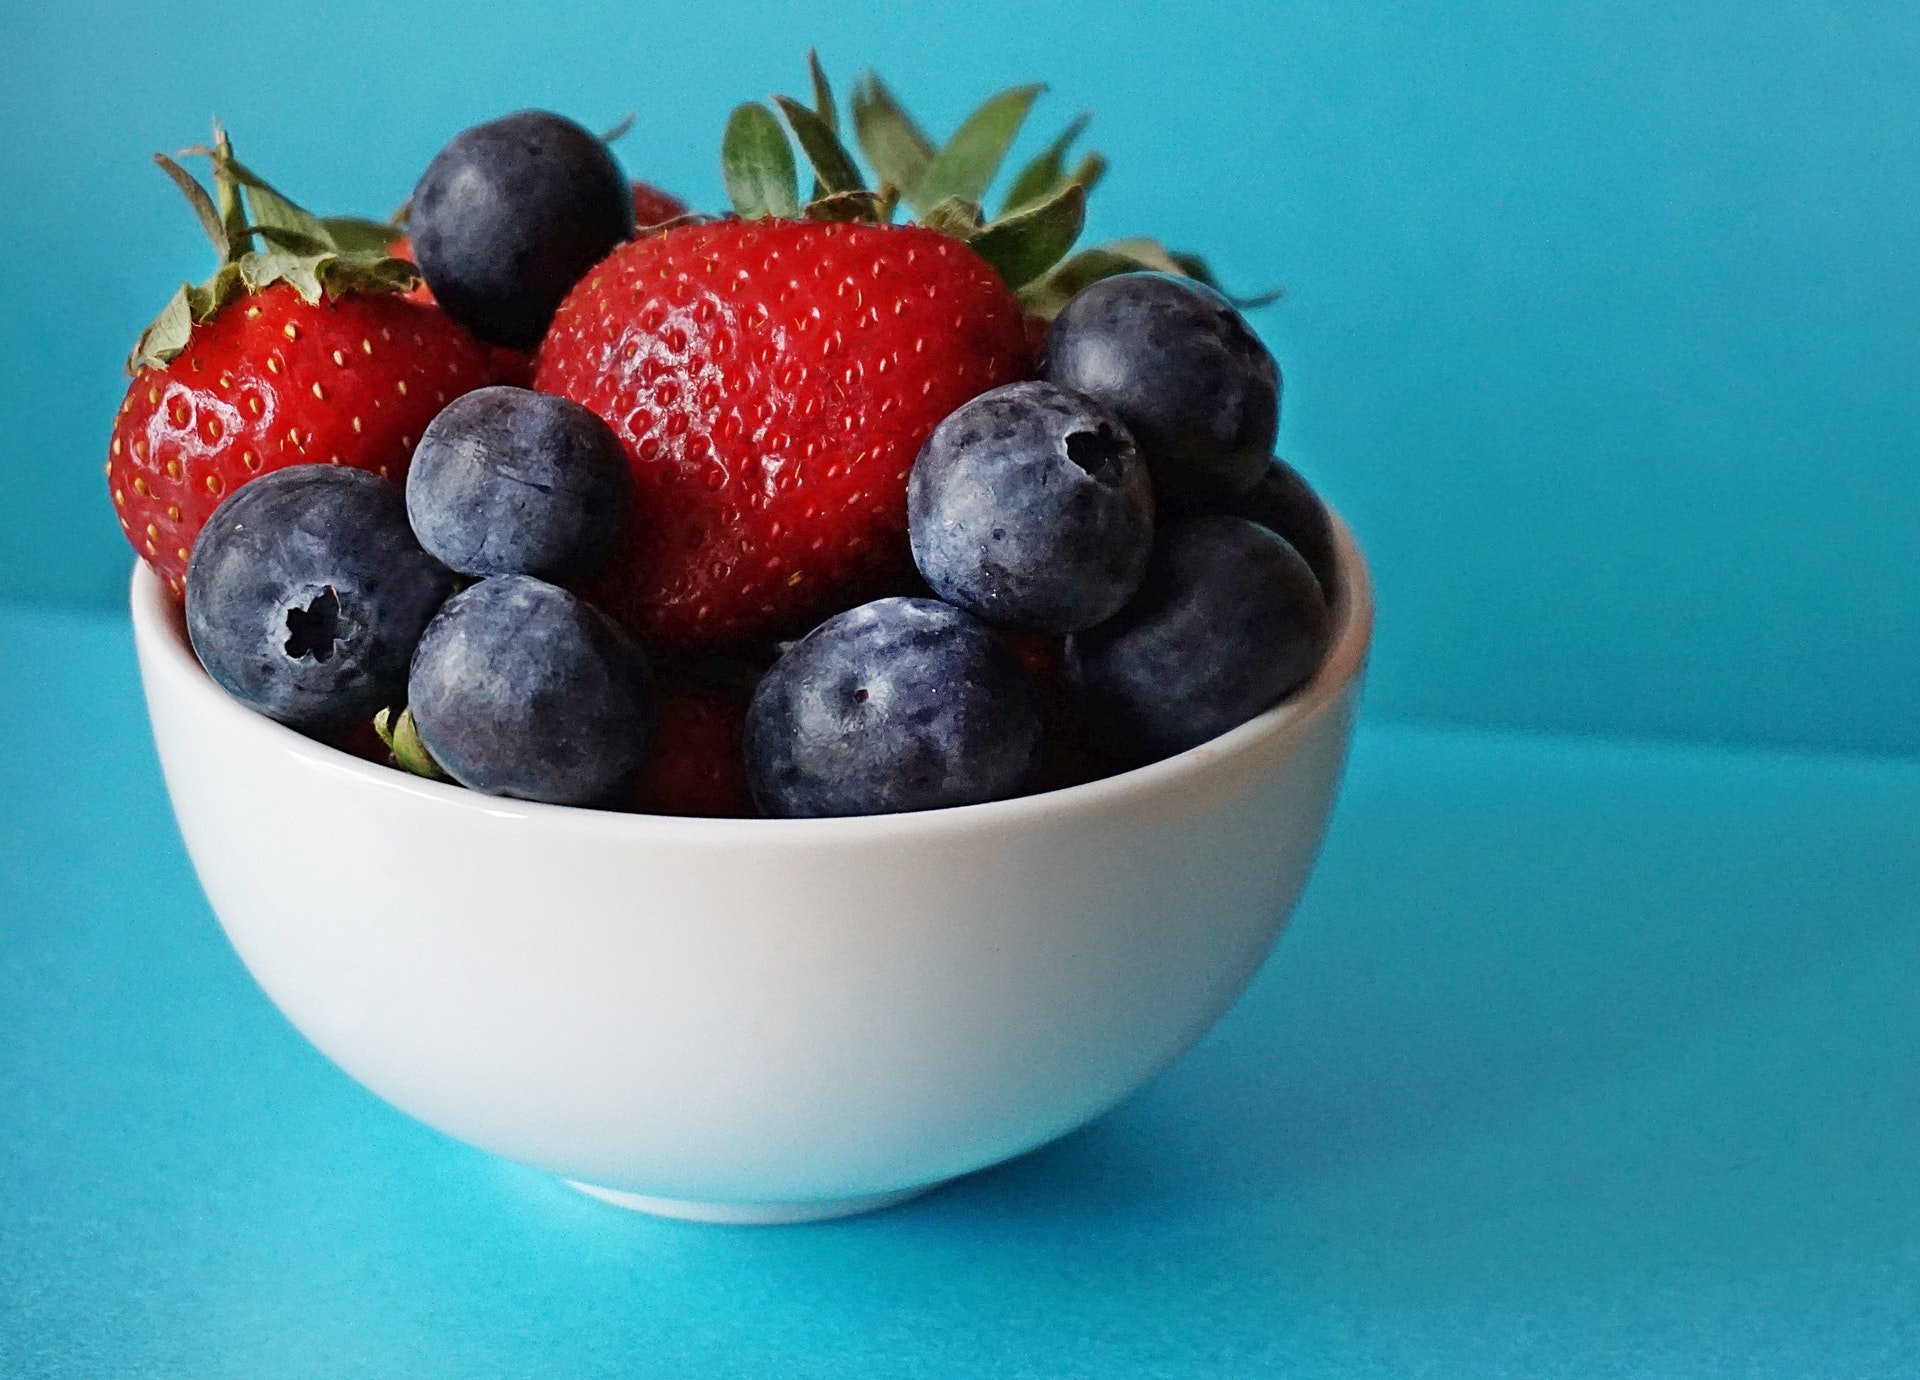 7 Superfoods to Boost Energy Levels © Suzy Hazelwood from Pexels